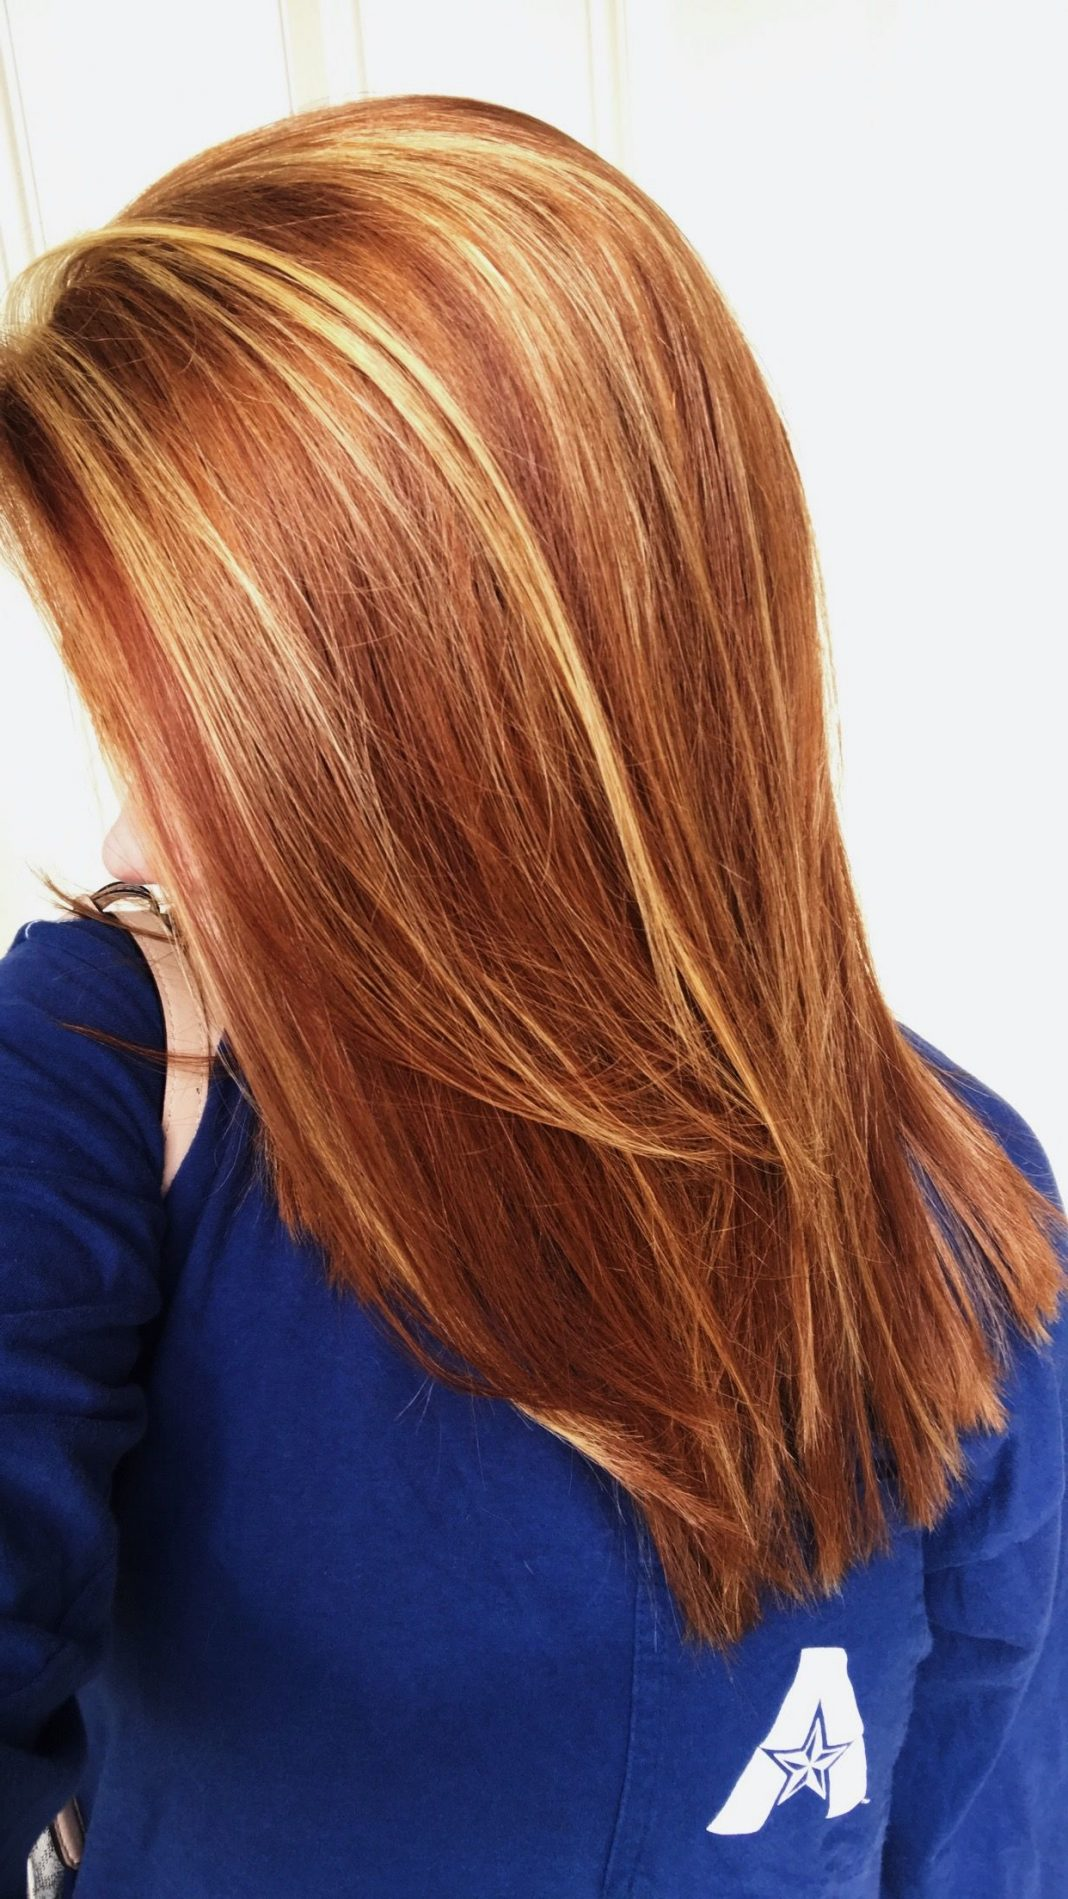 22 Ginger Natural Red Hair Color Ideas That Are Trending ...